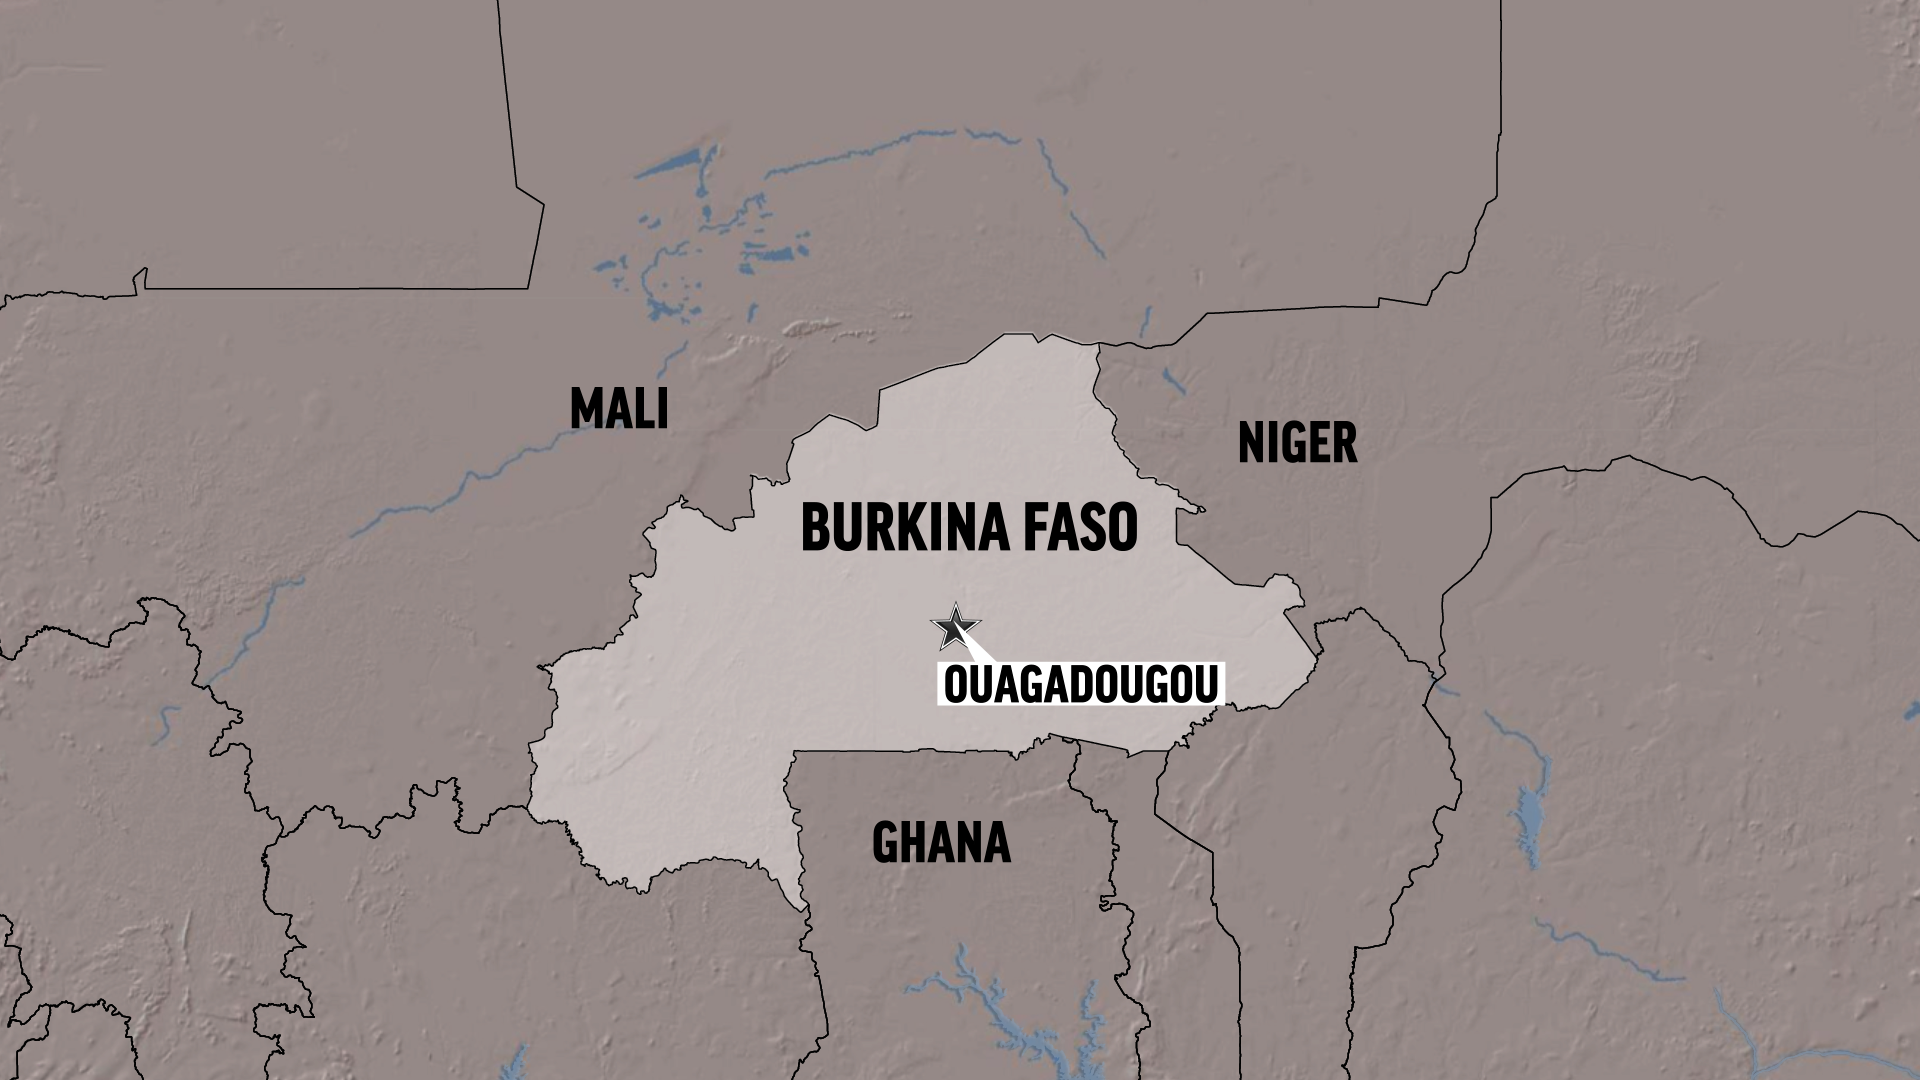 Turkish national killed in Burkina Faso attack